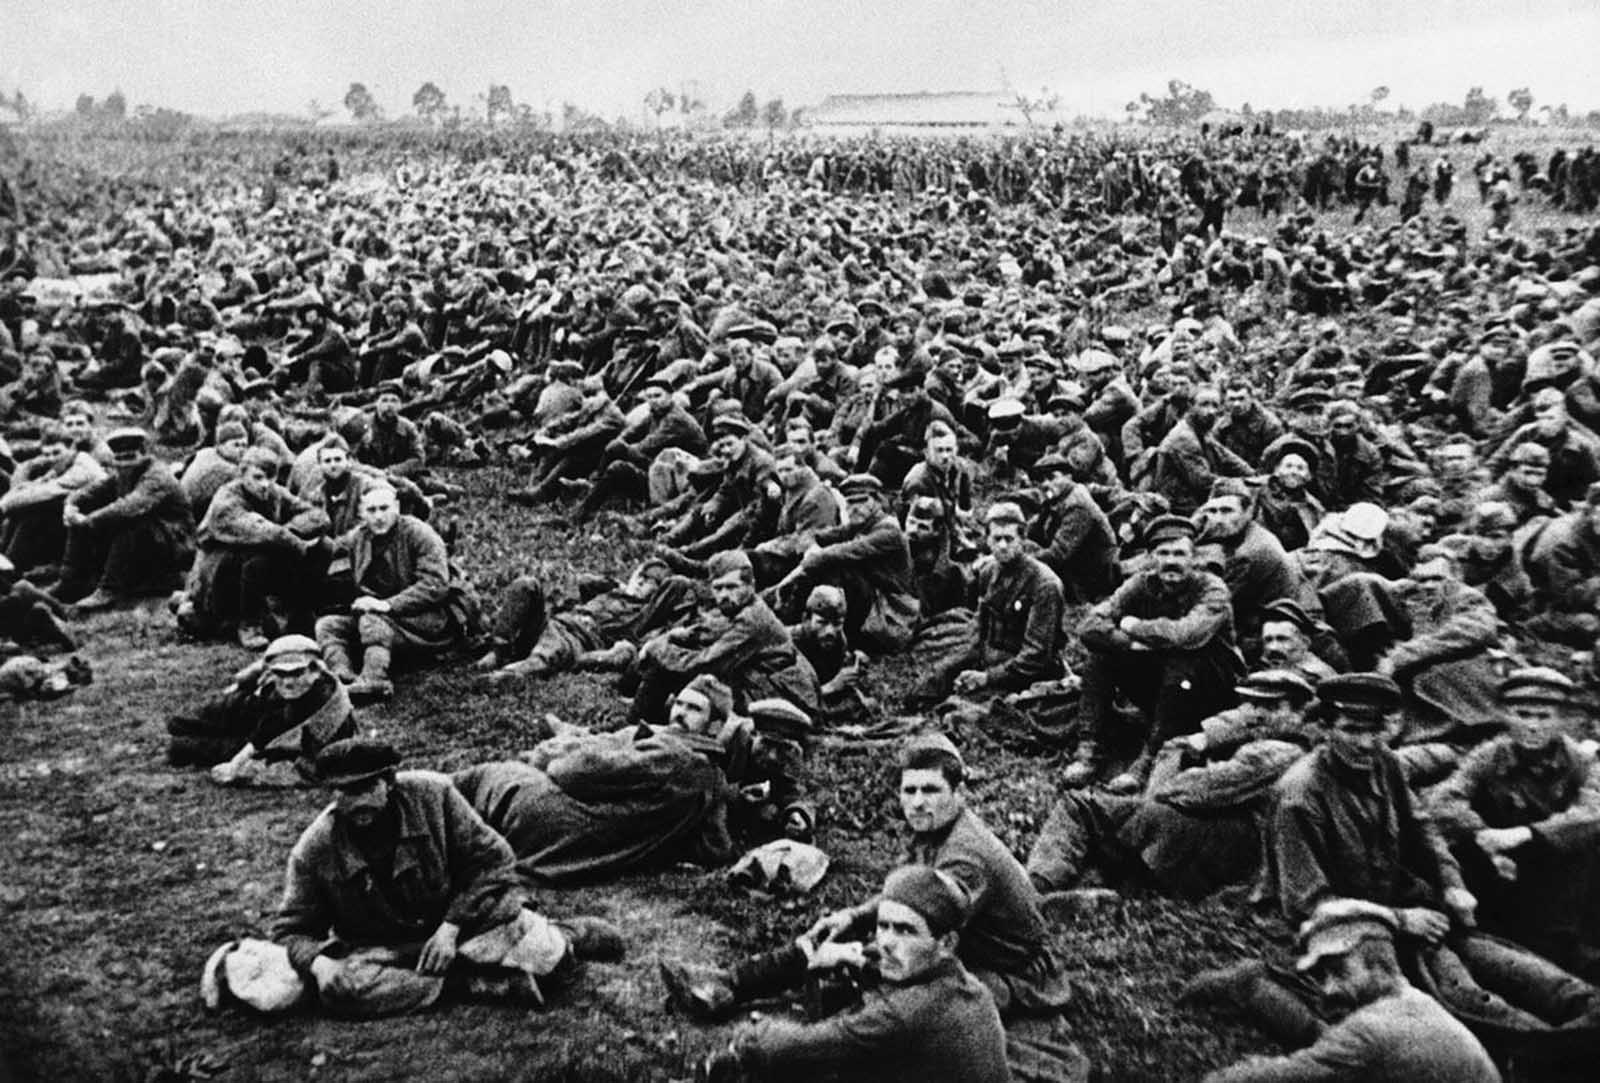 Evidence of the fierce fighting on the Moscow sector of the front is provided in this photo showing what the Germans claim to be some of the 650,000 Russian prisoners which they captured at Bryansk and Vyasma. They are here seen waiting to be transported to a prisoner of war camp somewhere in Russia, on November 2, 1941.